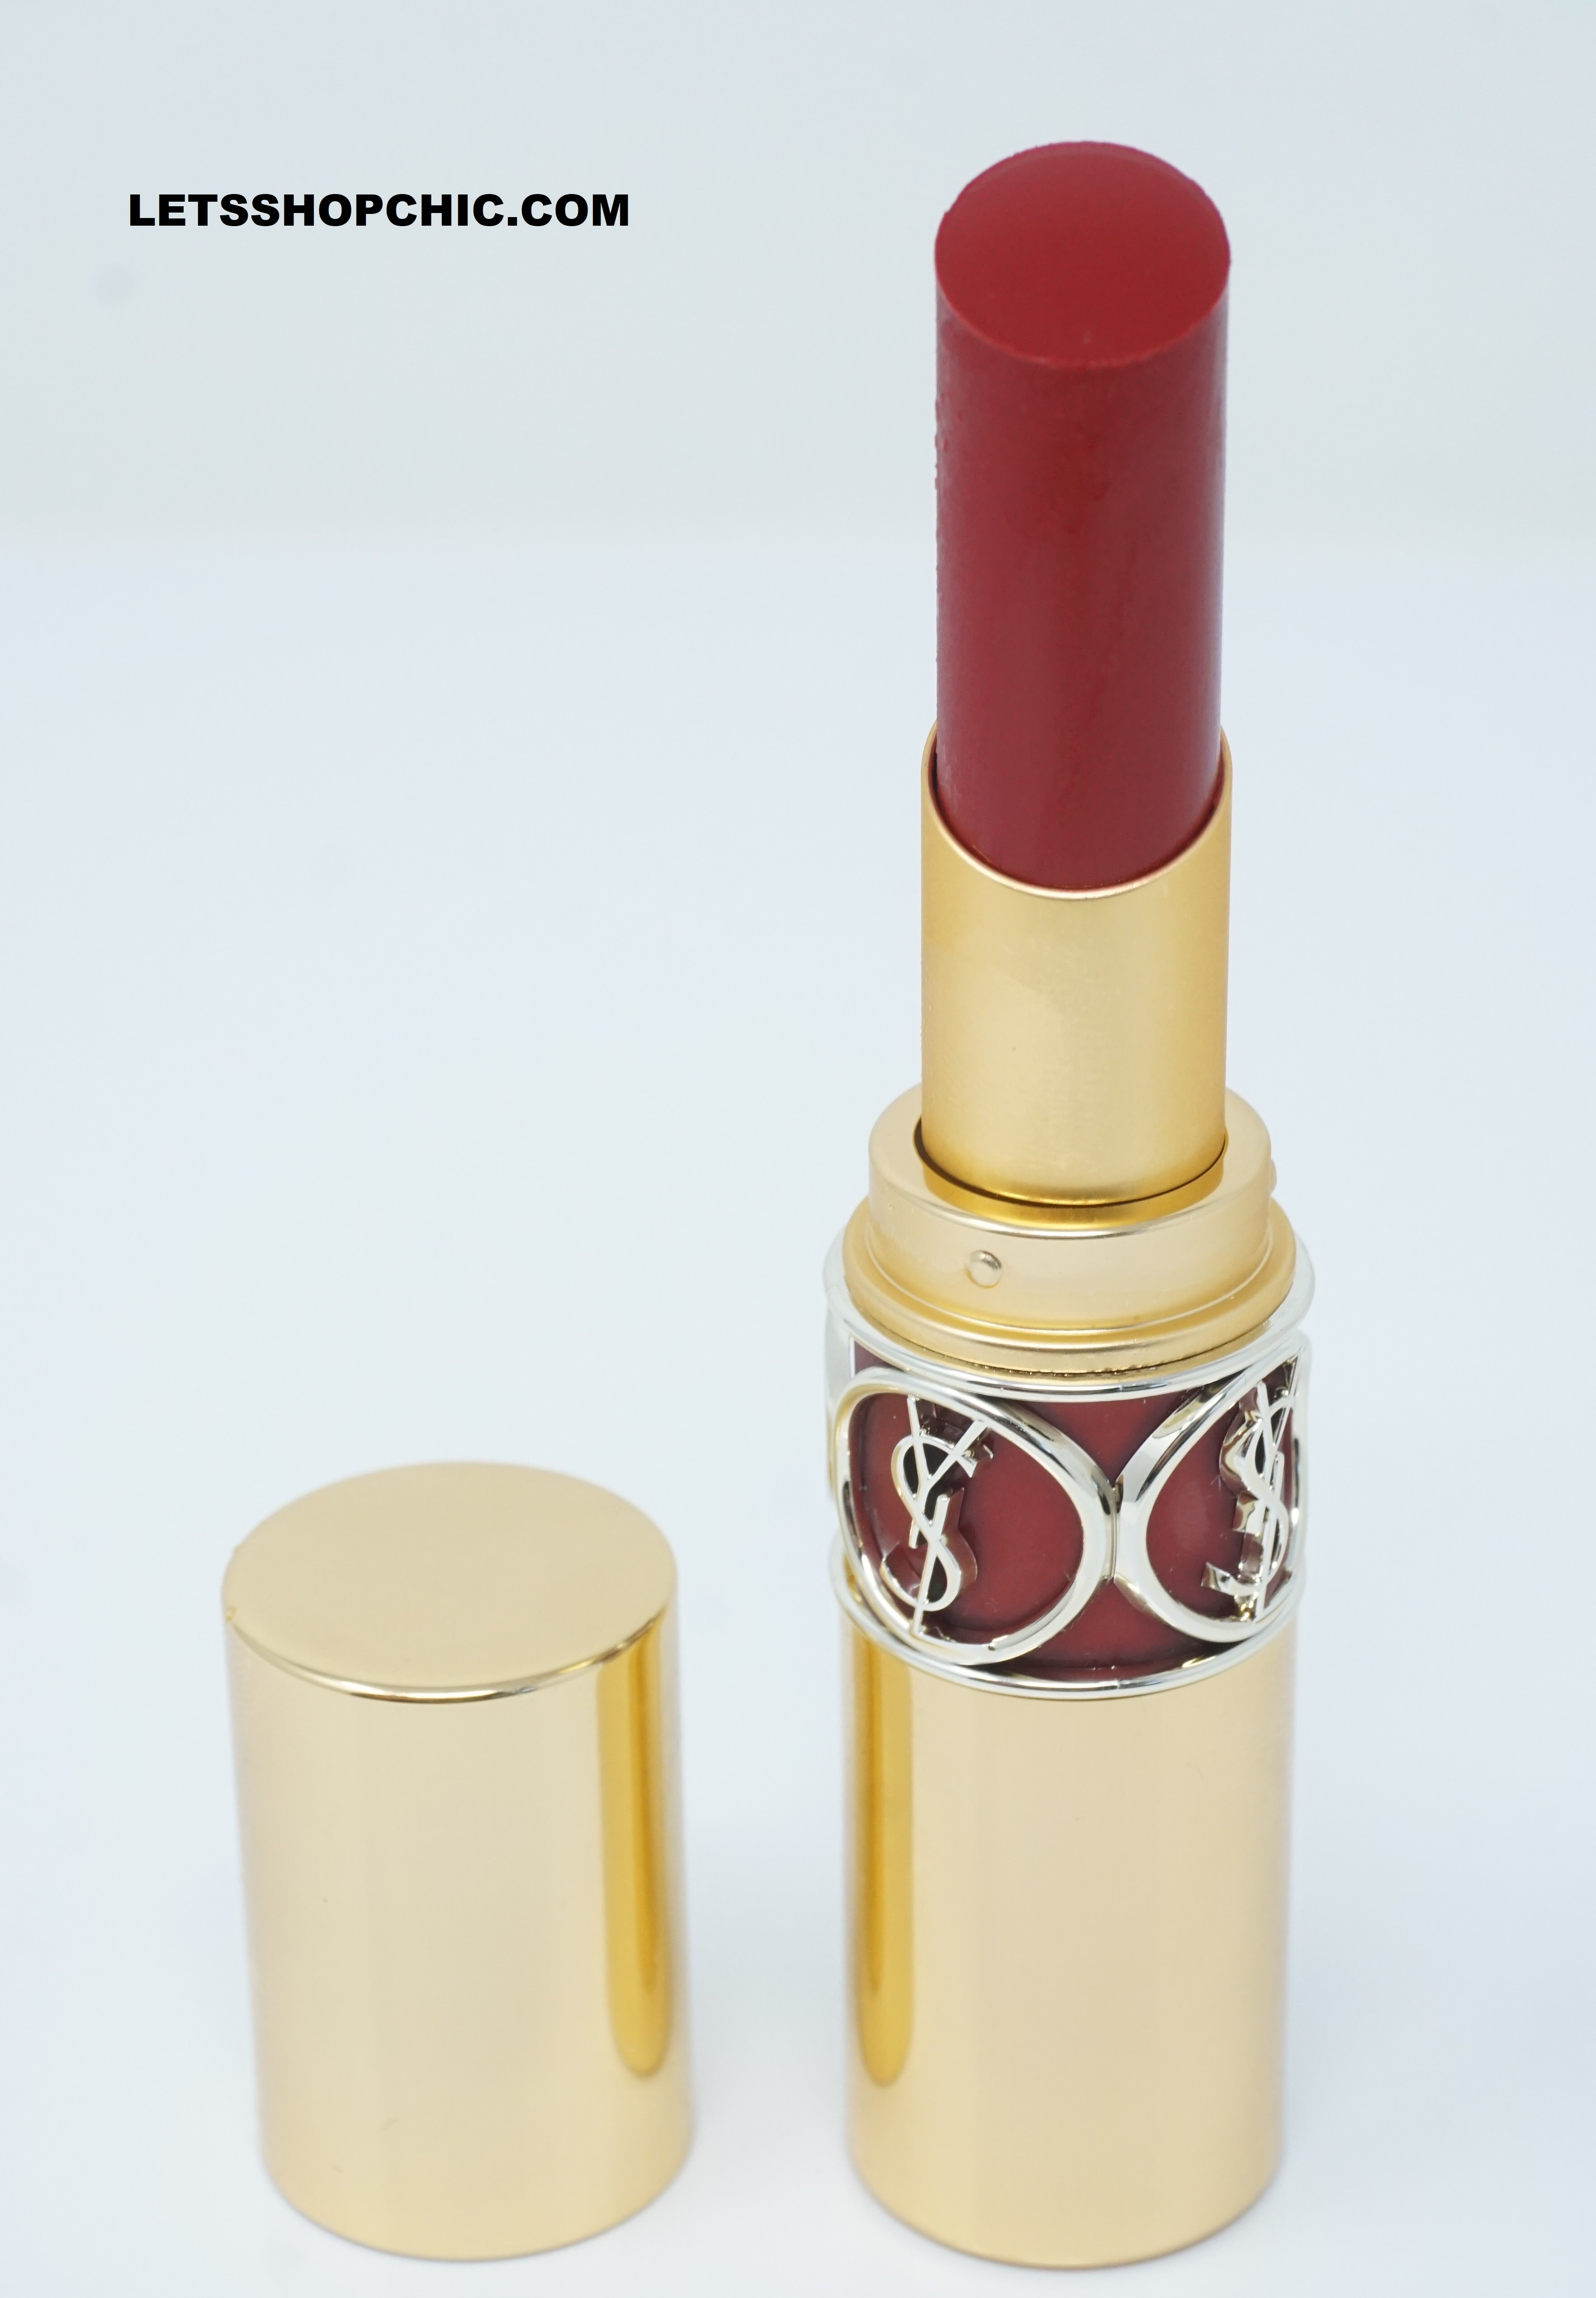 YSL Yves Saint Laurent Rouge Volupte Shine Oil-in-Stick Lipstick 92 Rouge Caftan